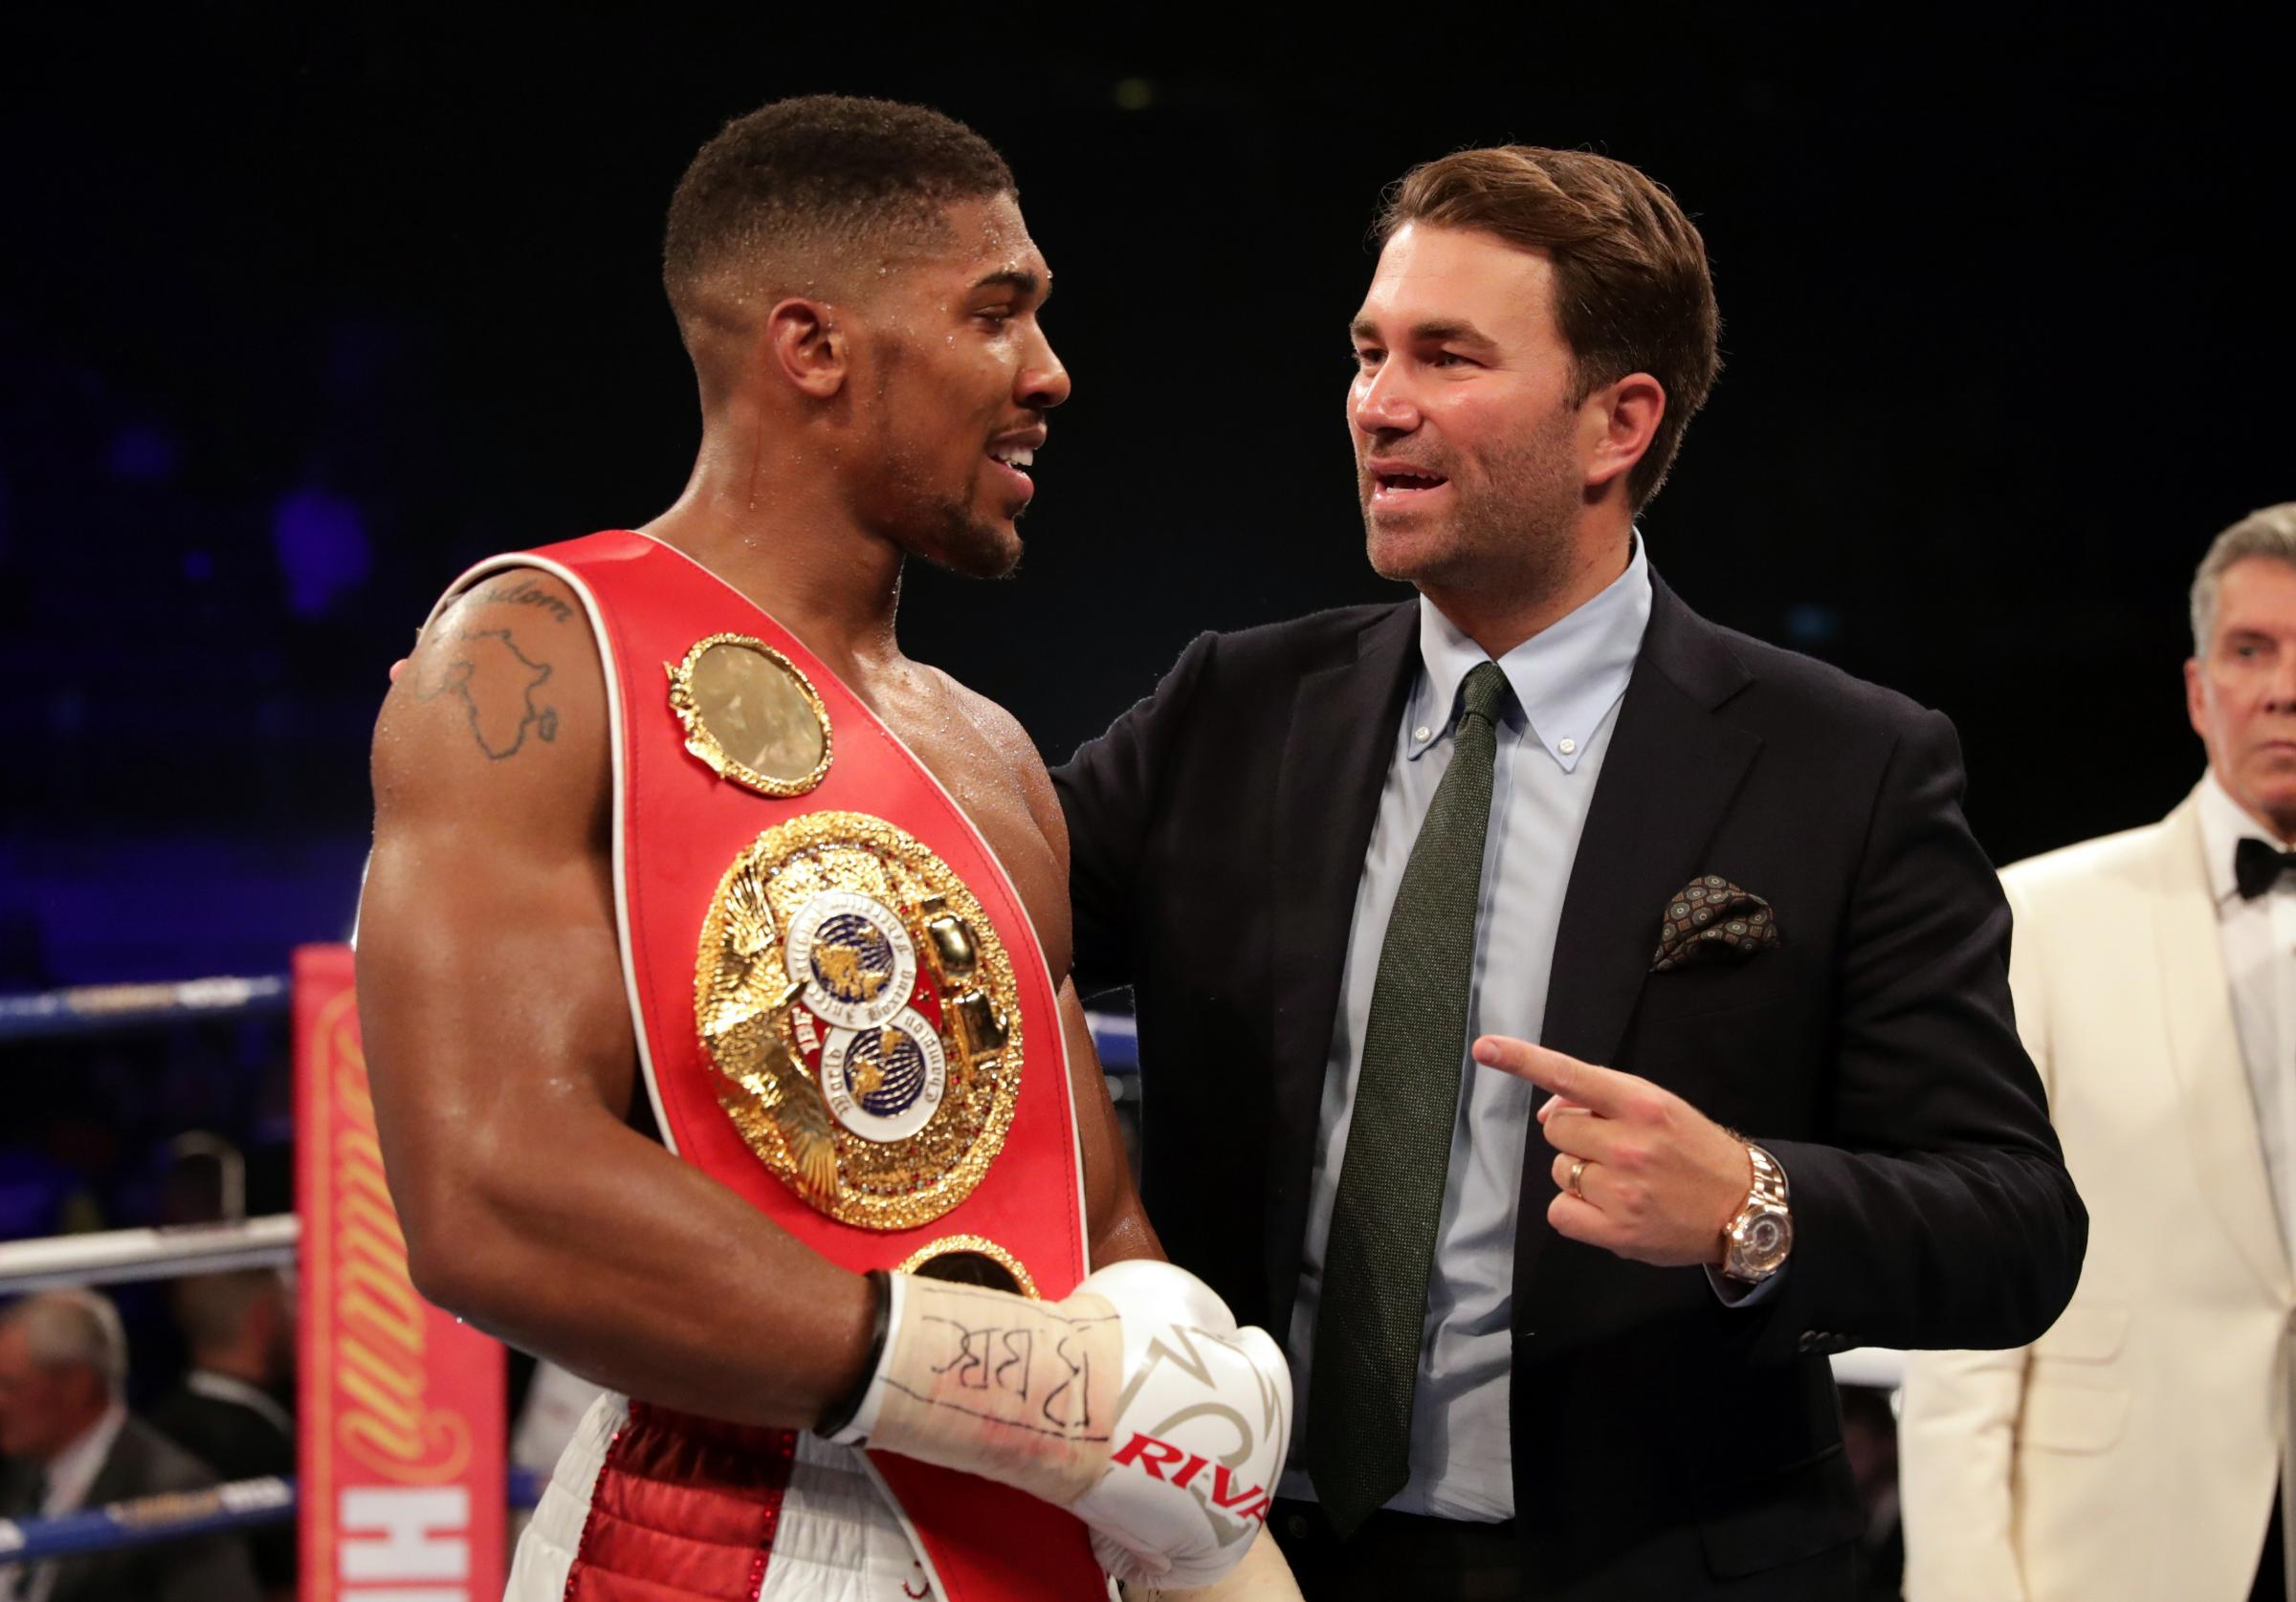 FIGHTING TALK: Boxing promoter Eddie Hearn, pictured with world heavyweight champion Anthony Joshua, says he can transform rugby league